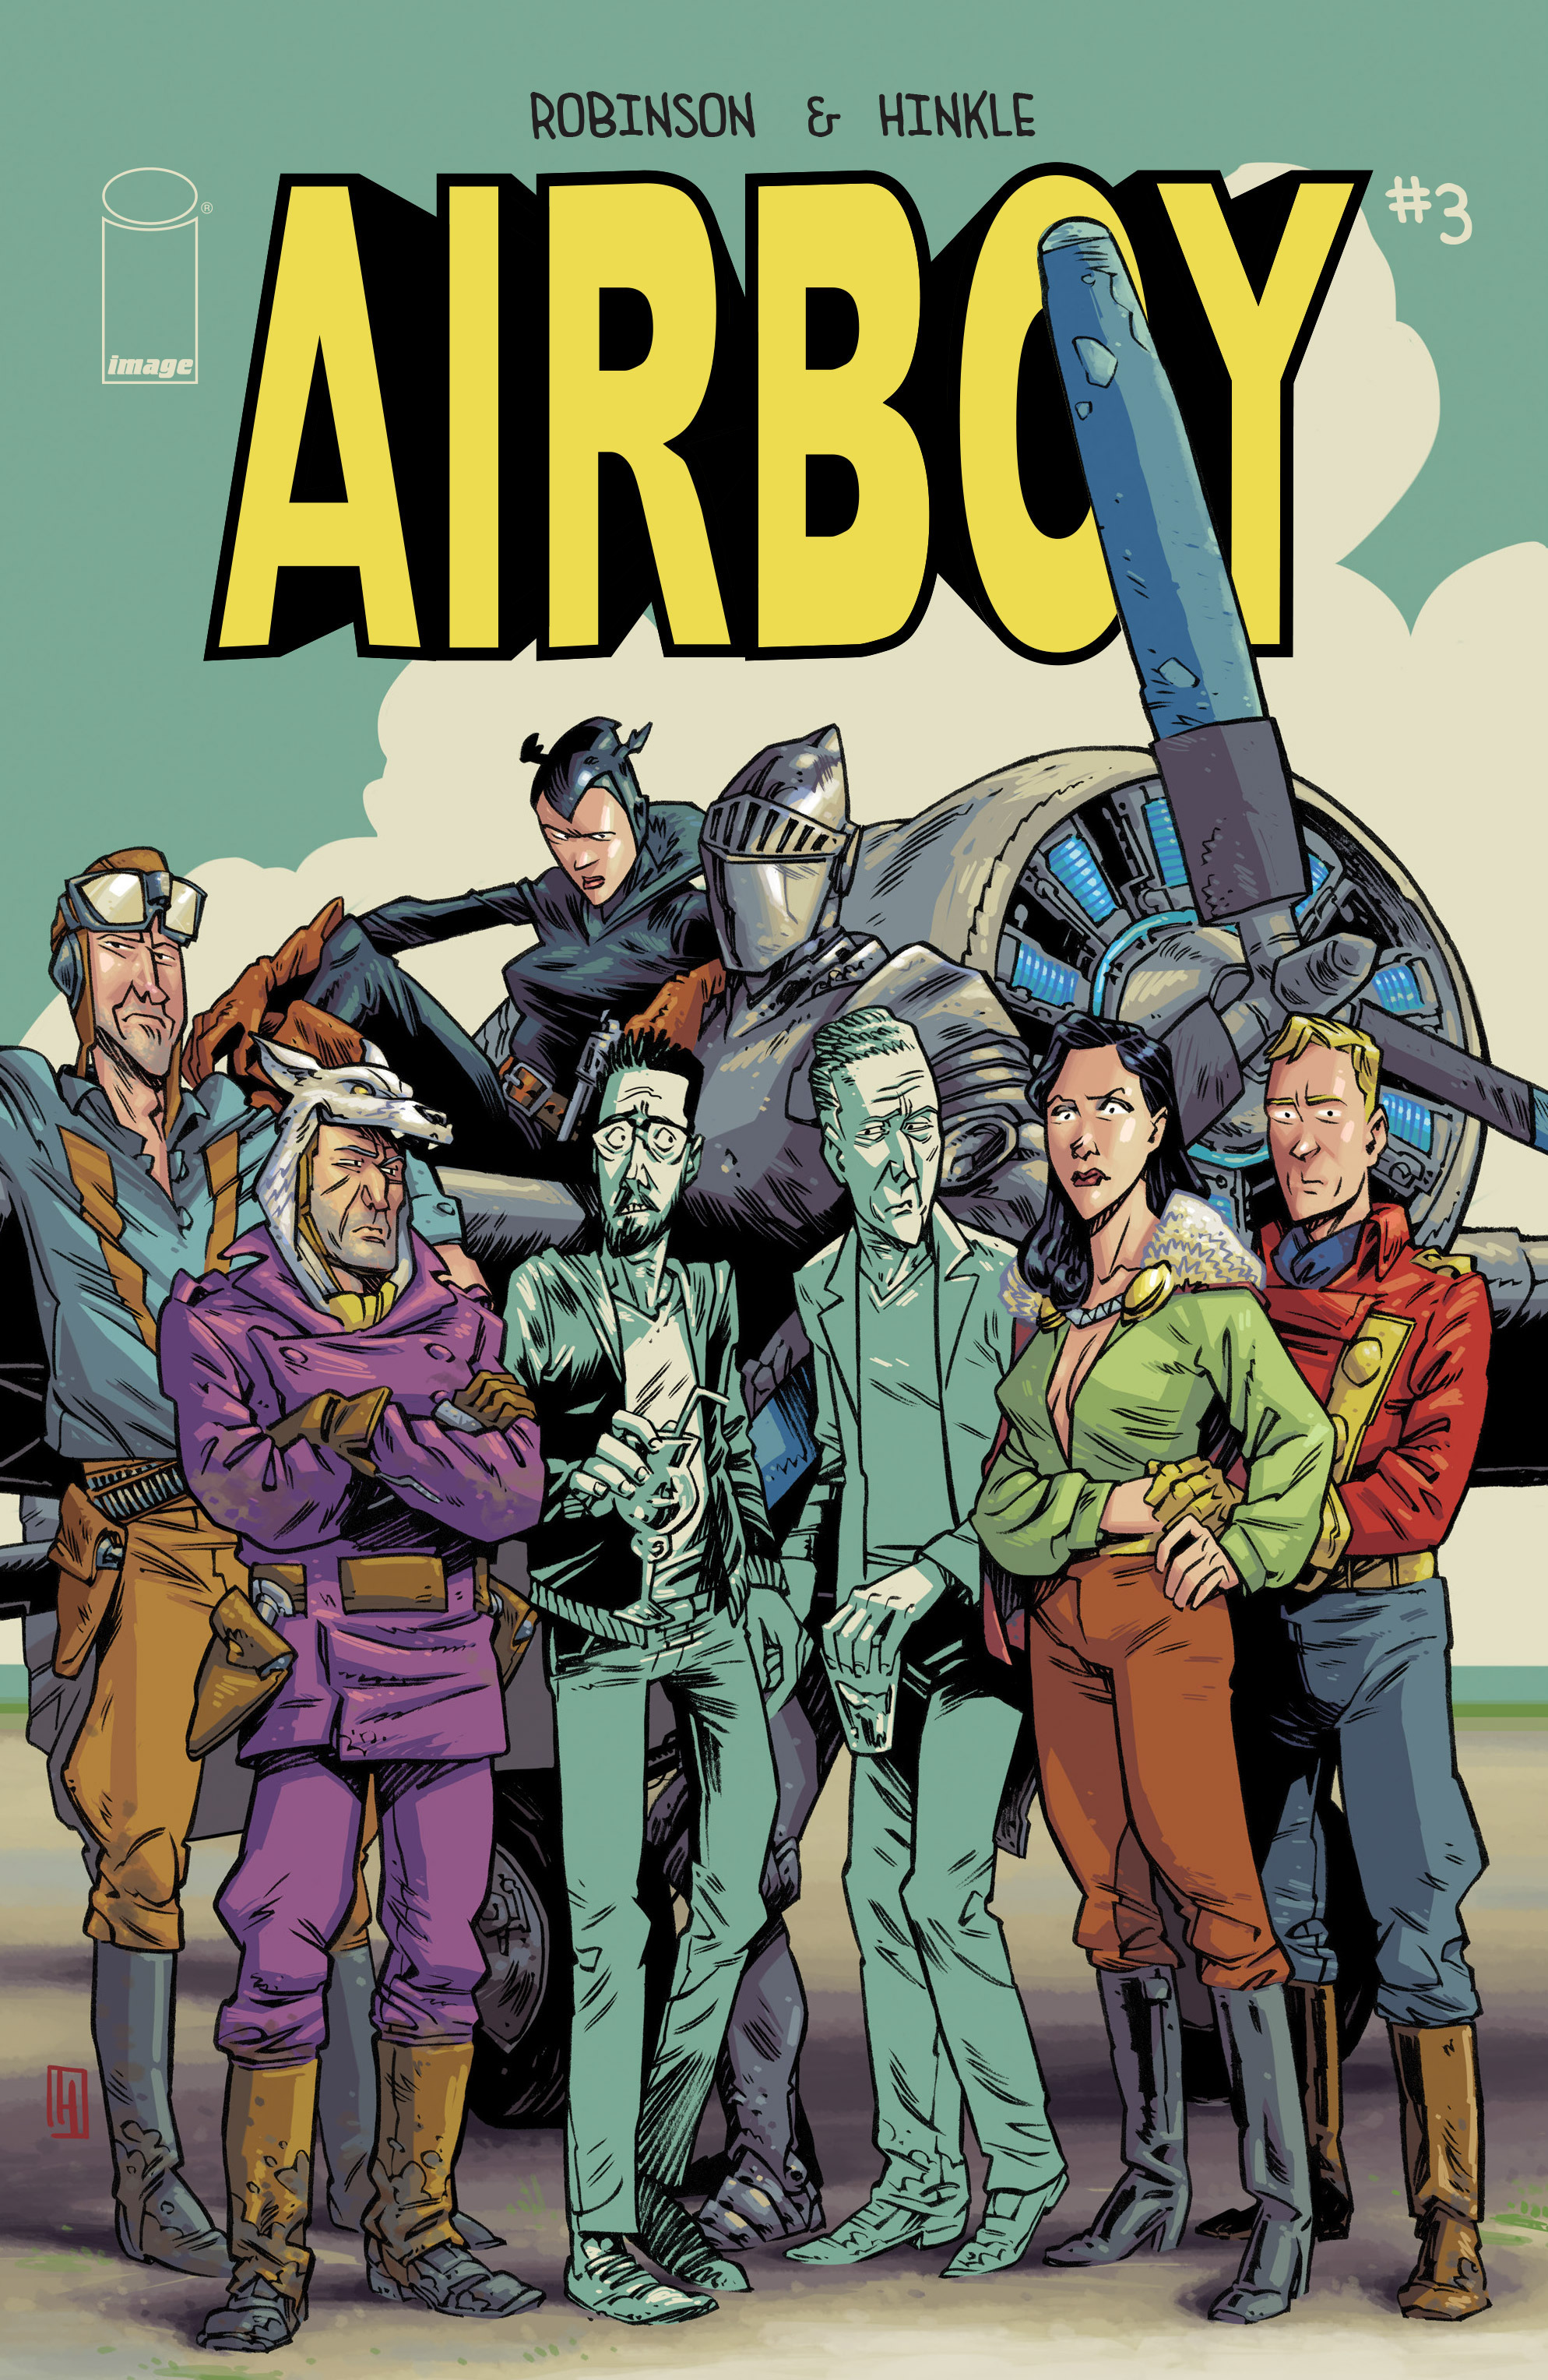 Read online Airboy comic -  Issue #3 - 1